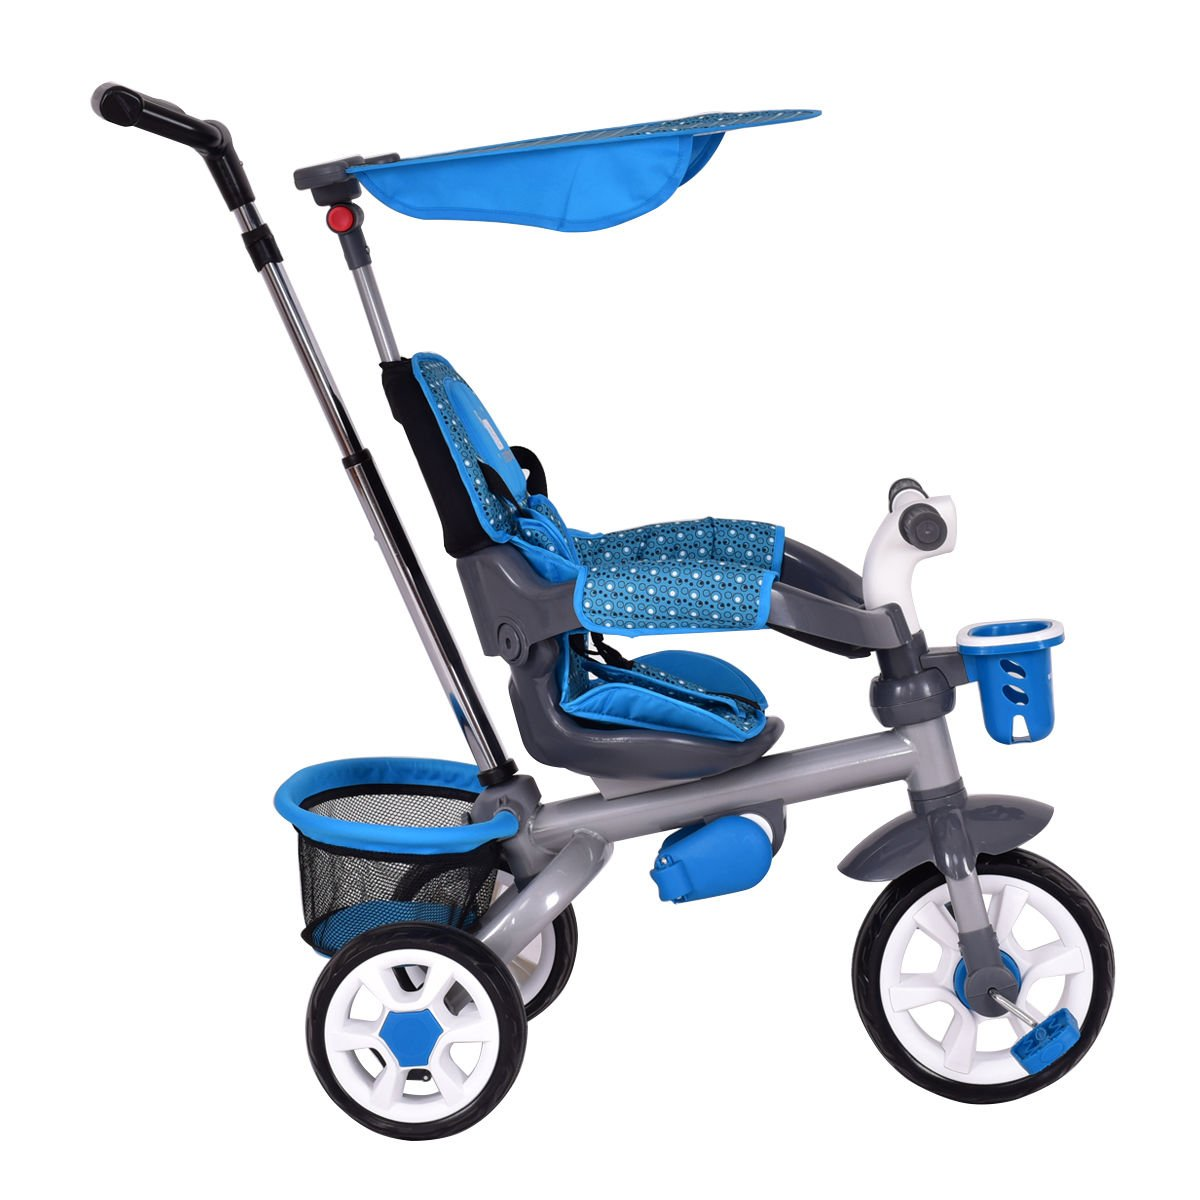 4-In-1 Kids Baby Stroller Tricycle Detachable Learning Toy Bike Canopy Basket by Eight24hours (Image #6)